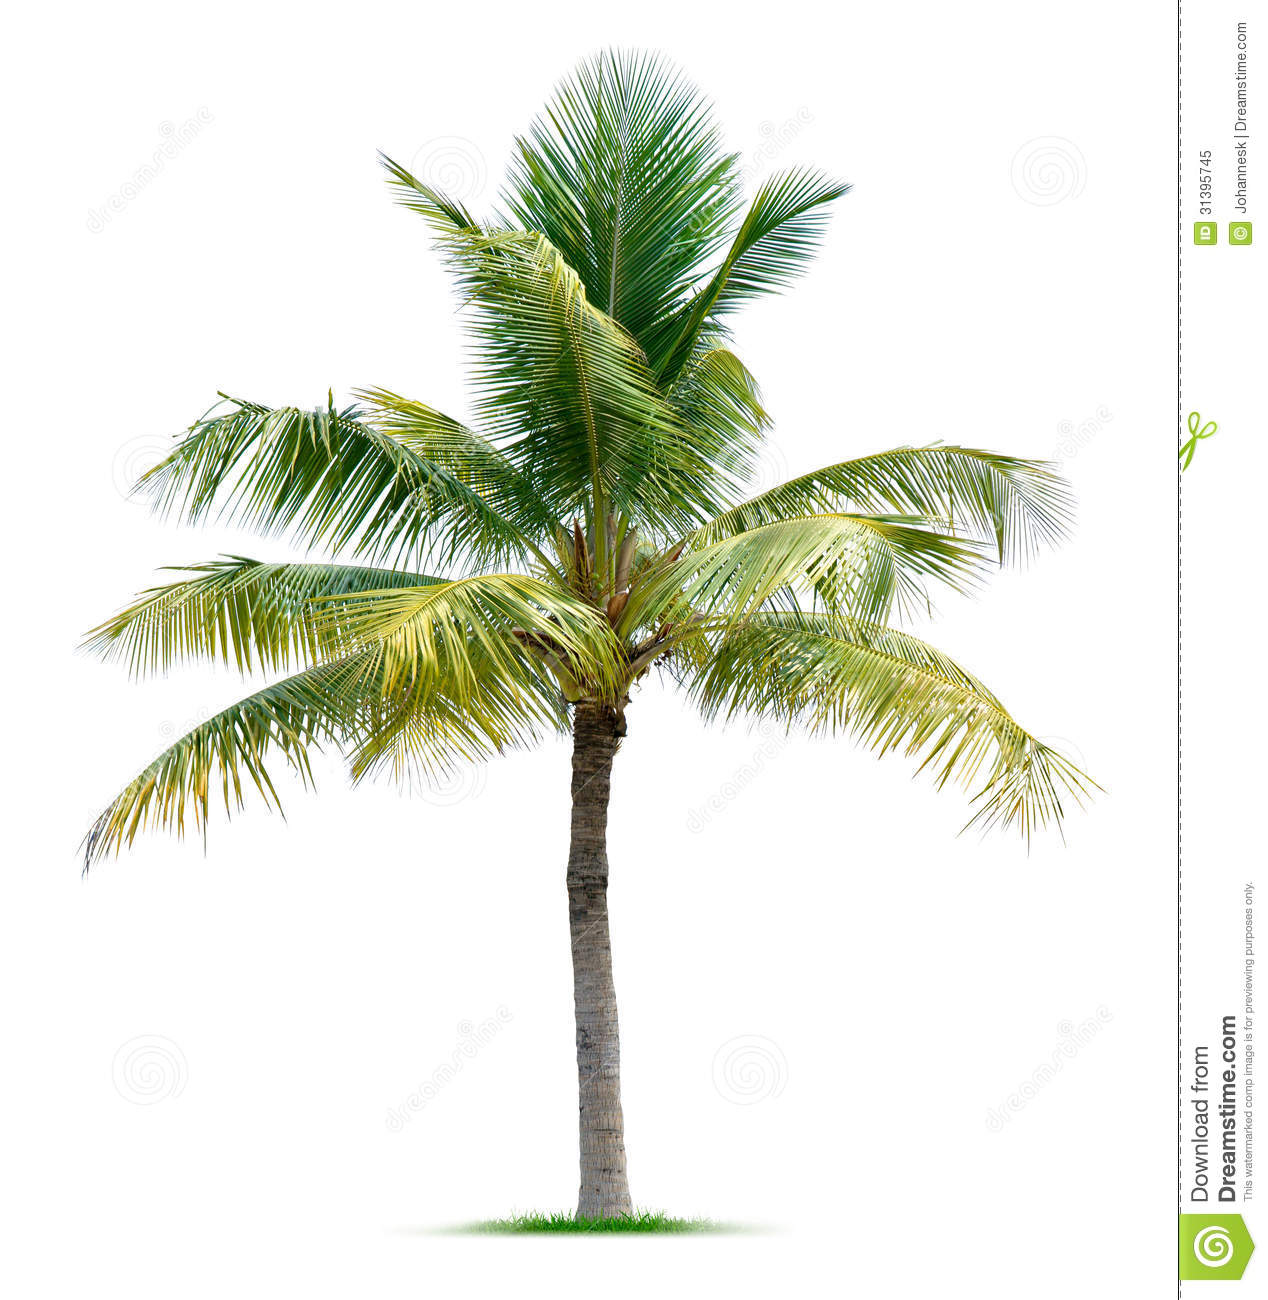 palm tree stock image image of coconut  botanical  white 31395745 free palm tree vector art free palm tree vector illustrator